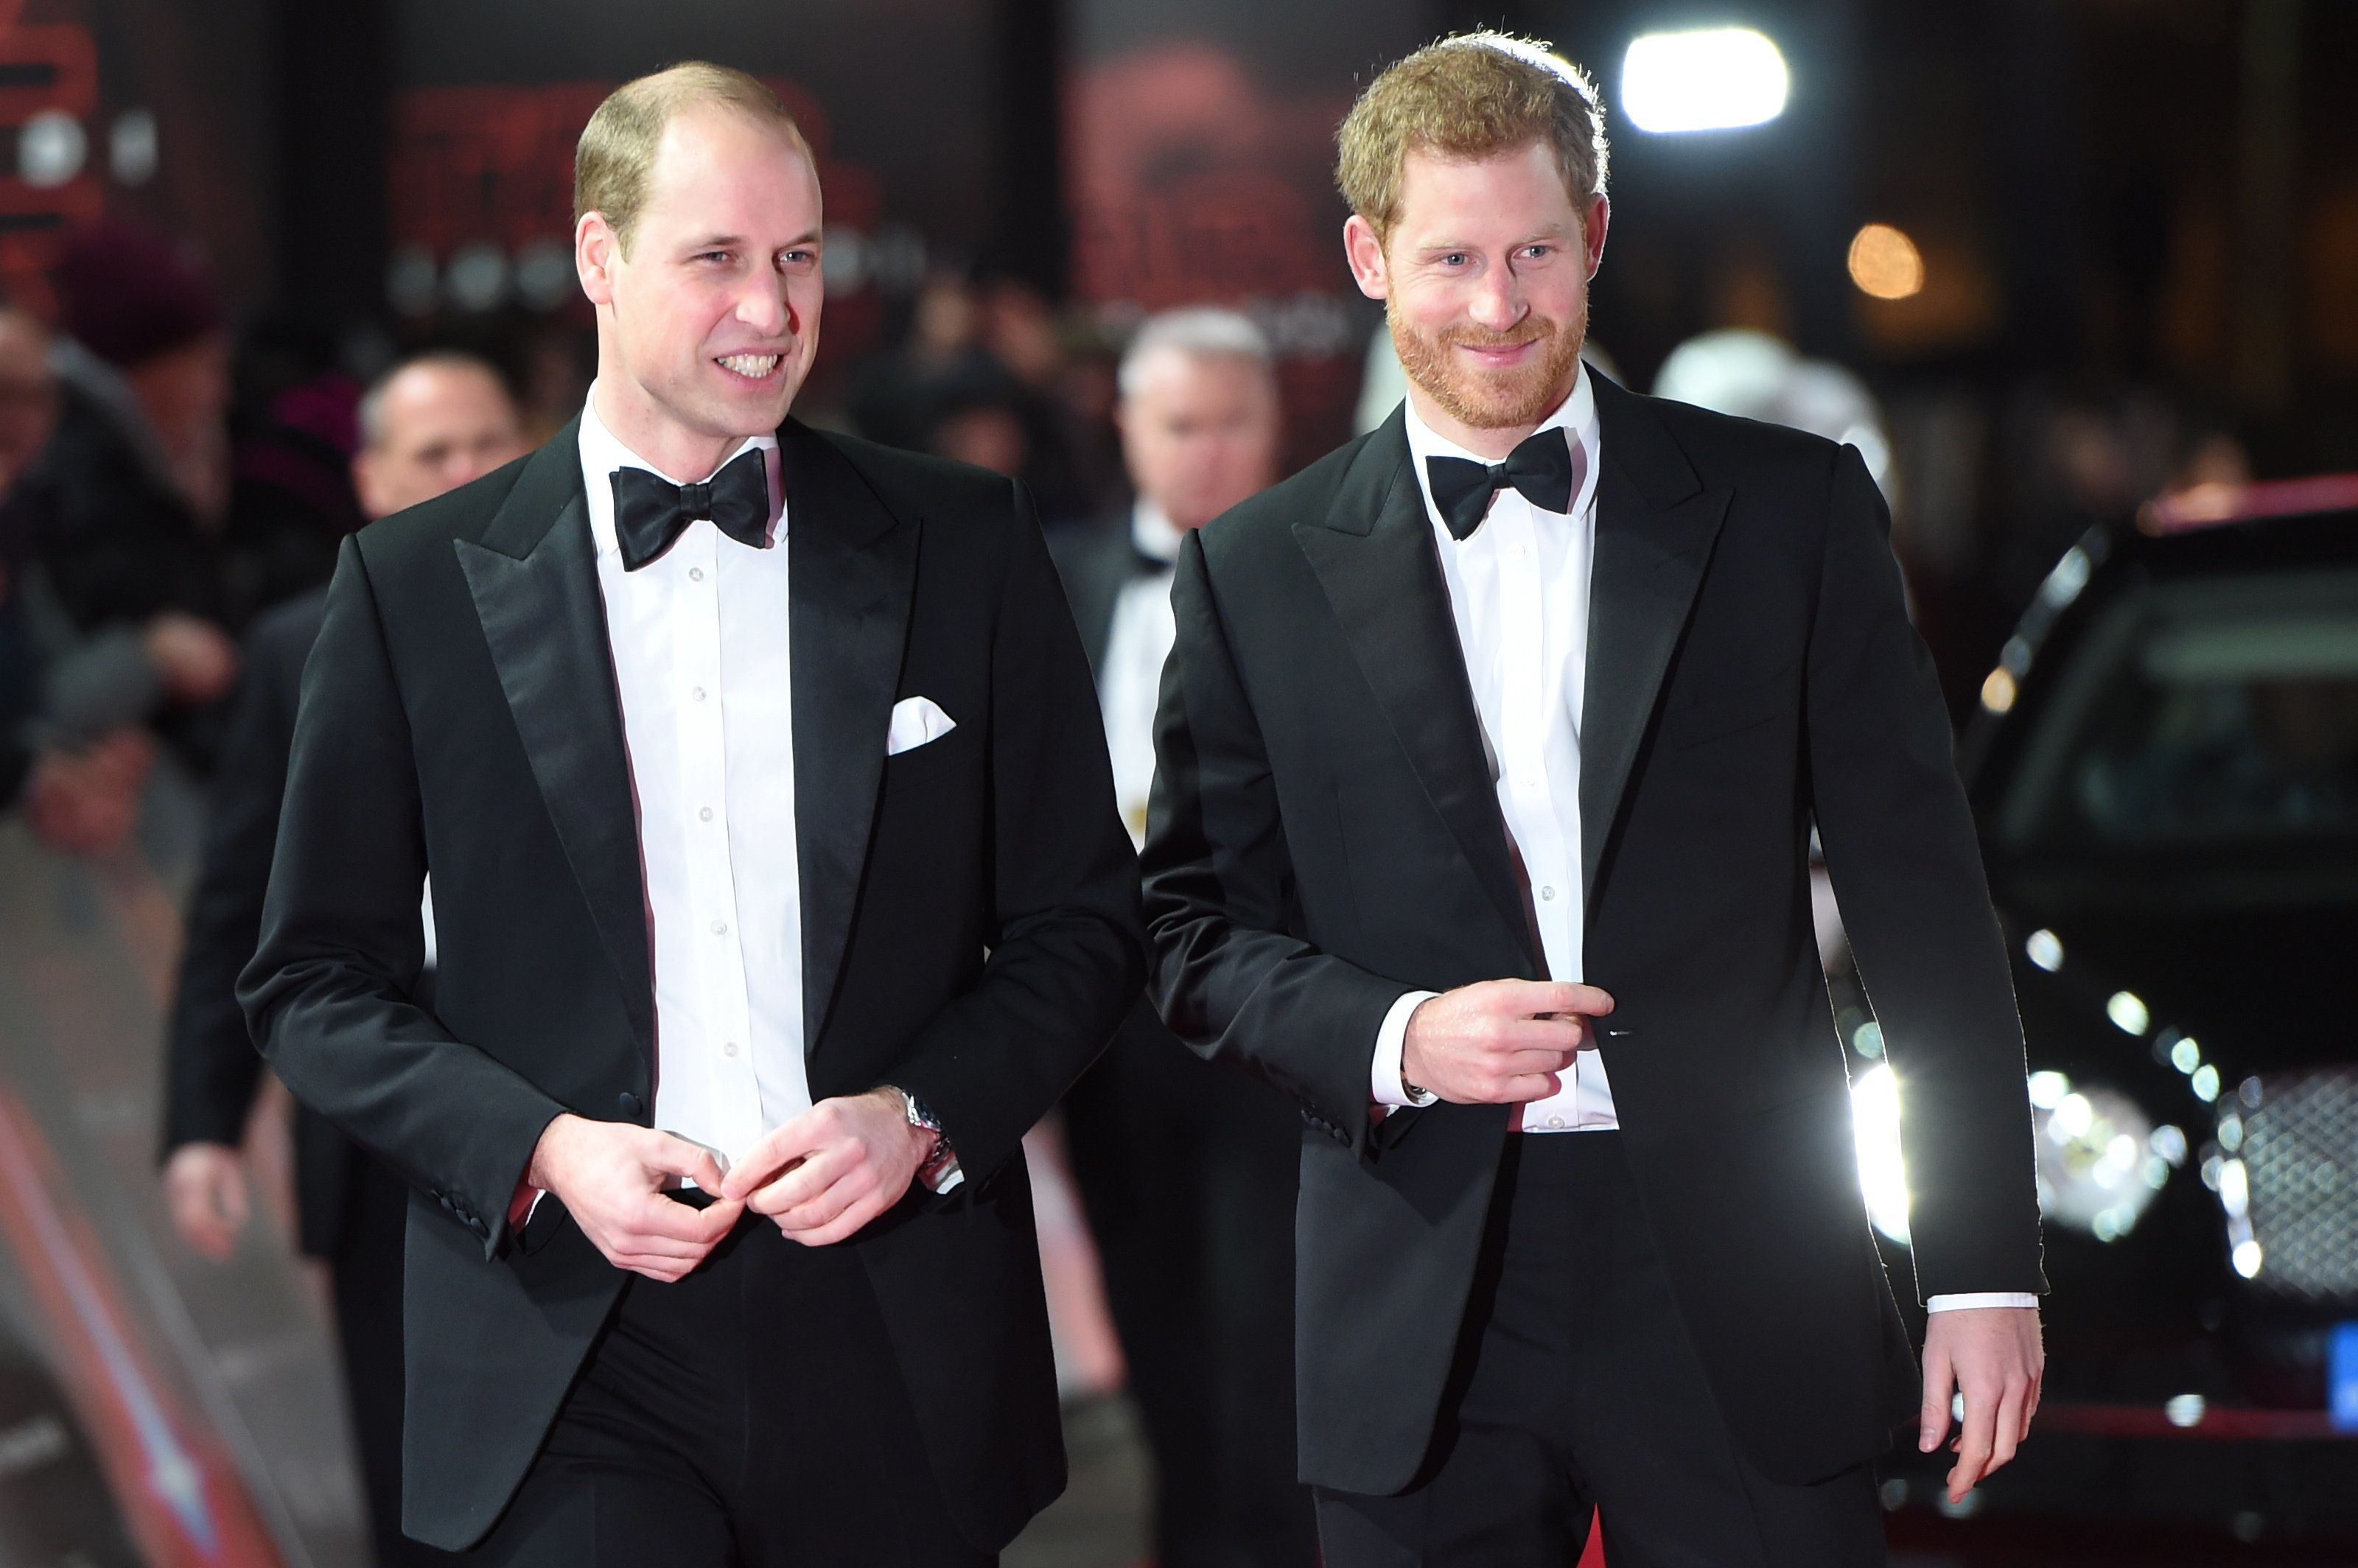 Prince William, Duke of Cambridge and Prince Harry attend the European Premiere of Star Wars: The Last Jedi, at the Royal Albert Hall, London, Britain December 12, 2017. REUTERS/Eddie Mulholland/Pool